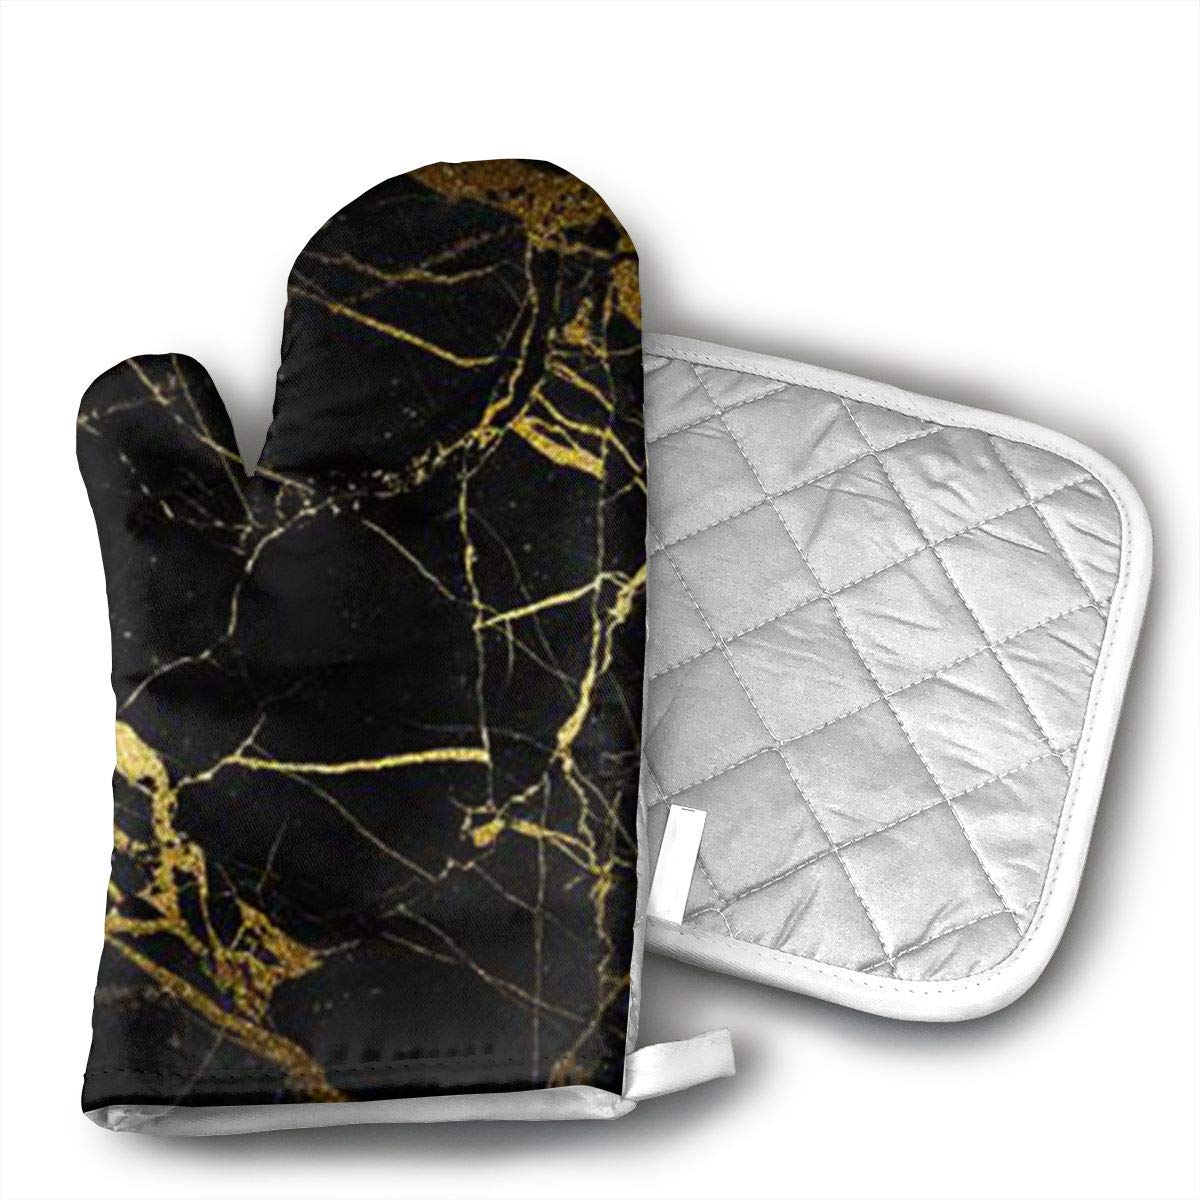 Gold and Black Wallpaper Kitchen Oven Mitts/Gloves - Heat Resistant, Handle Hot Oven/Cooking Items Safely - Soft Insulated Deep Pockets, Non-Slip Grip